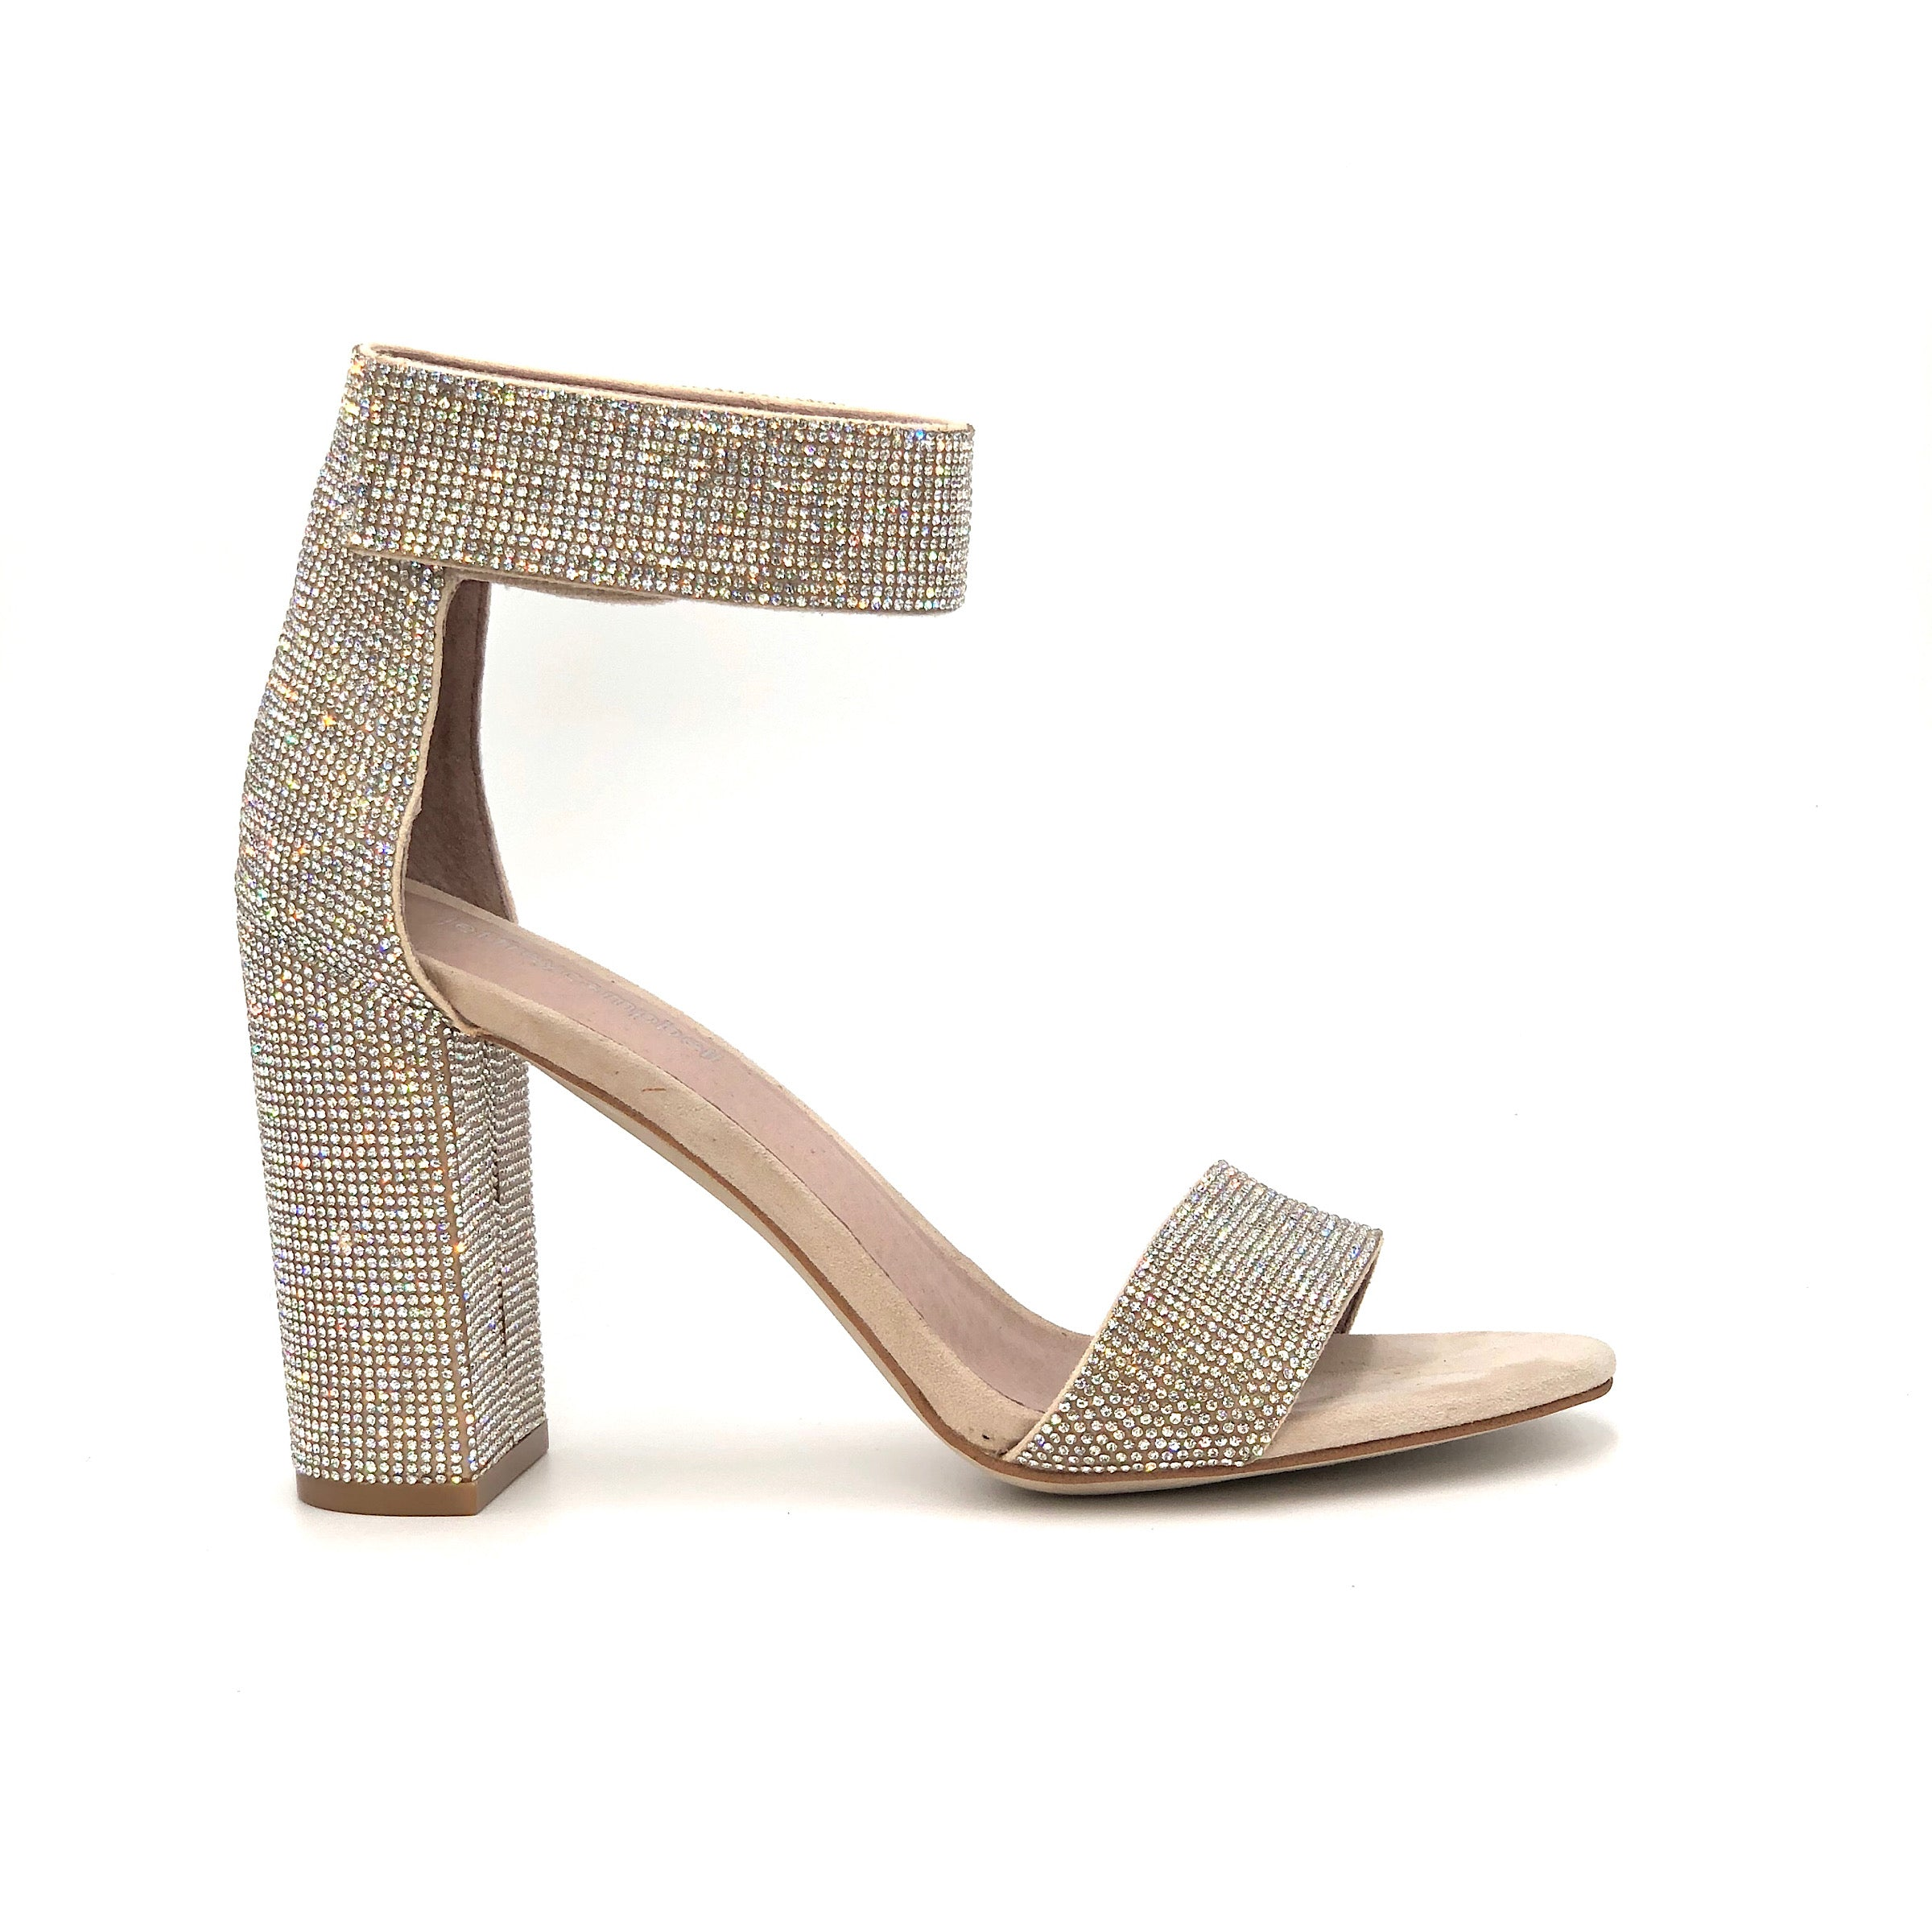 The High Crystal Sandal in Nude Champagne